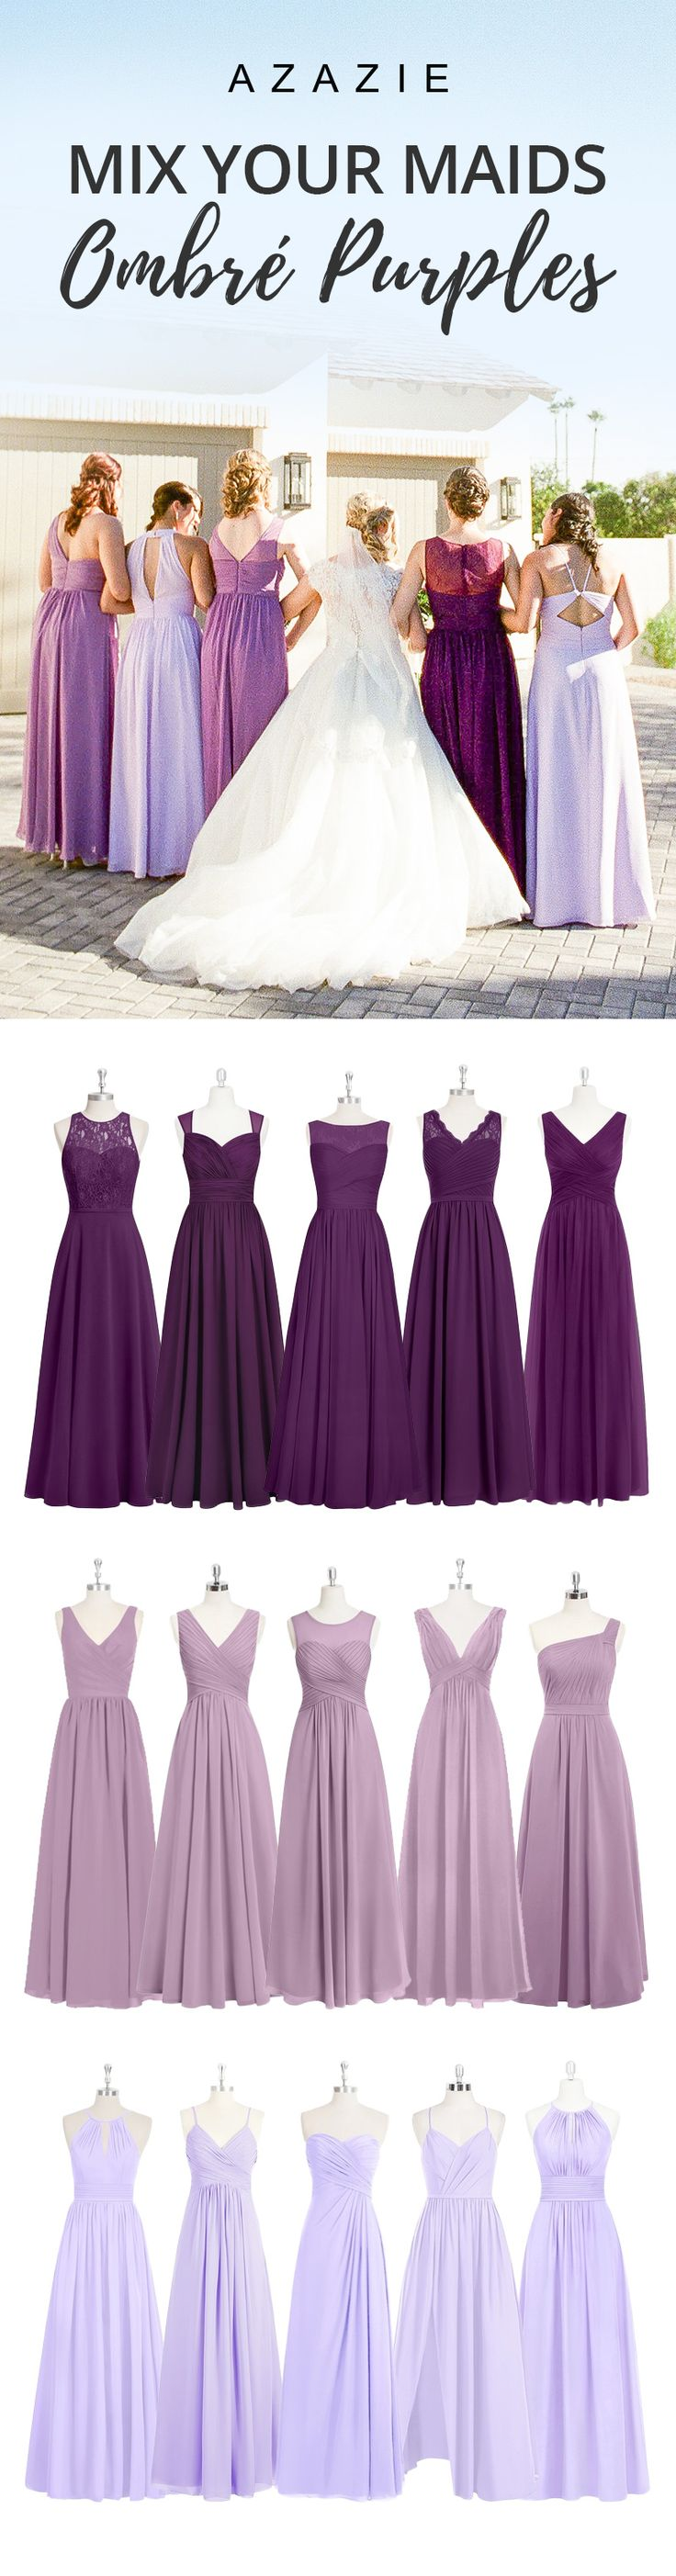 Mixing-and-match your bridesmaids in gorgeous purples. Wedding tip: Order color swatches to see the colors in our various fabrics for easy wedding planning!